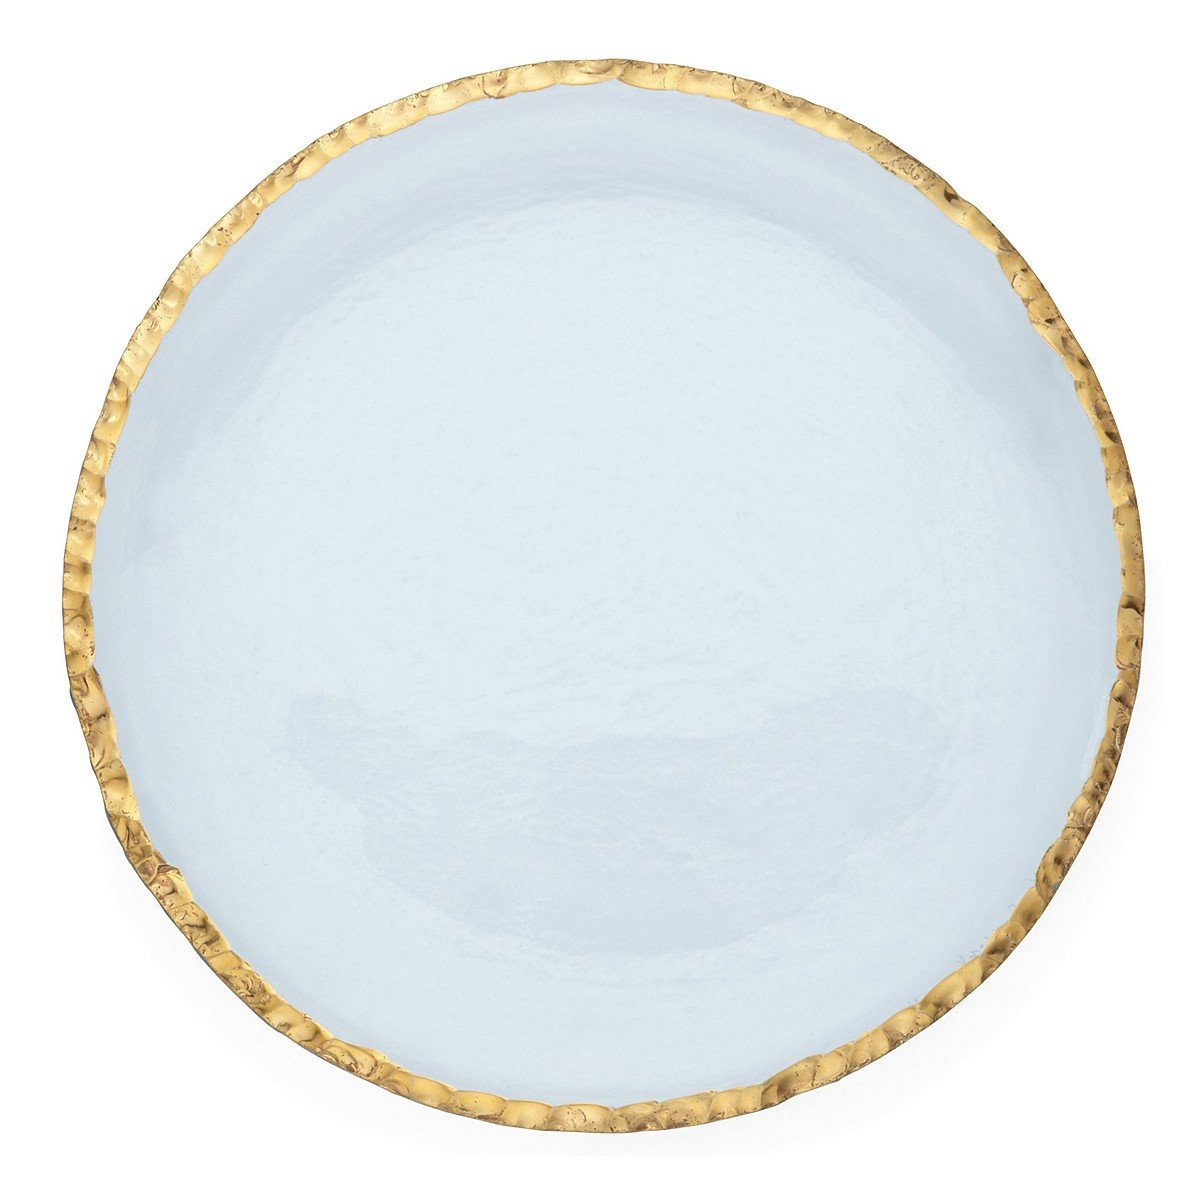 Annie Glass Edgey Gold Charger plate 12'' round platter #e108g